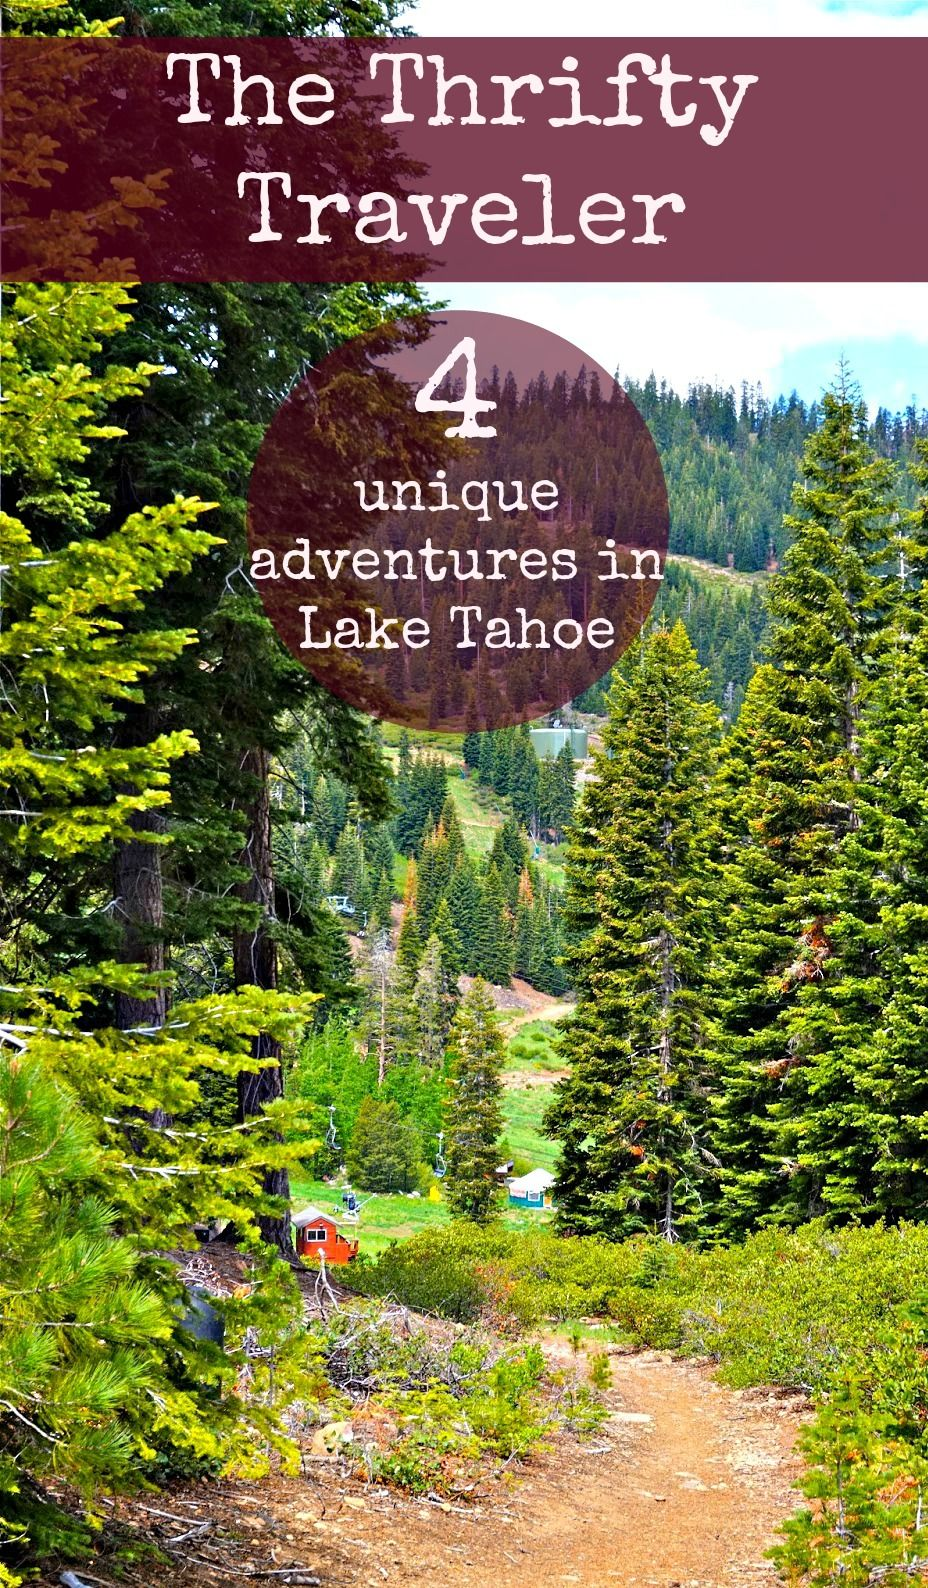 Exploring Lake Tahoe in the summer: 4 unique adven